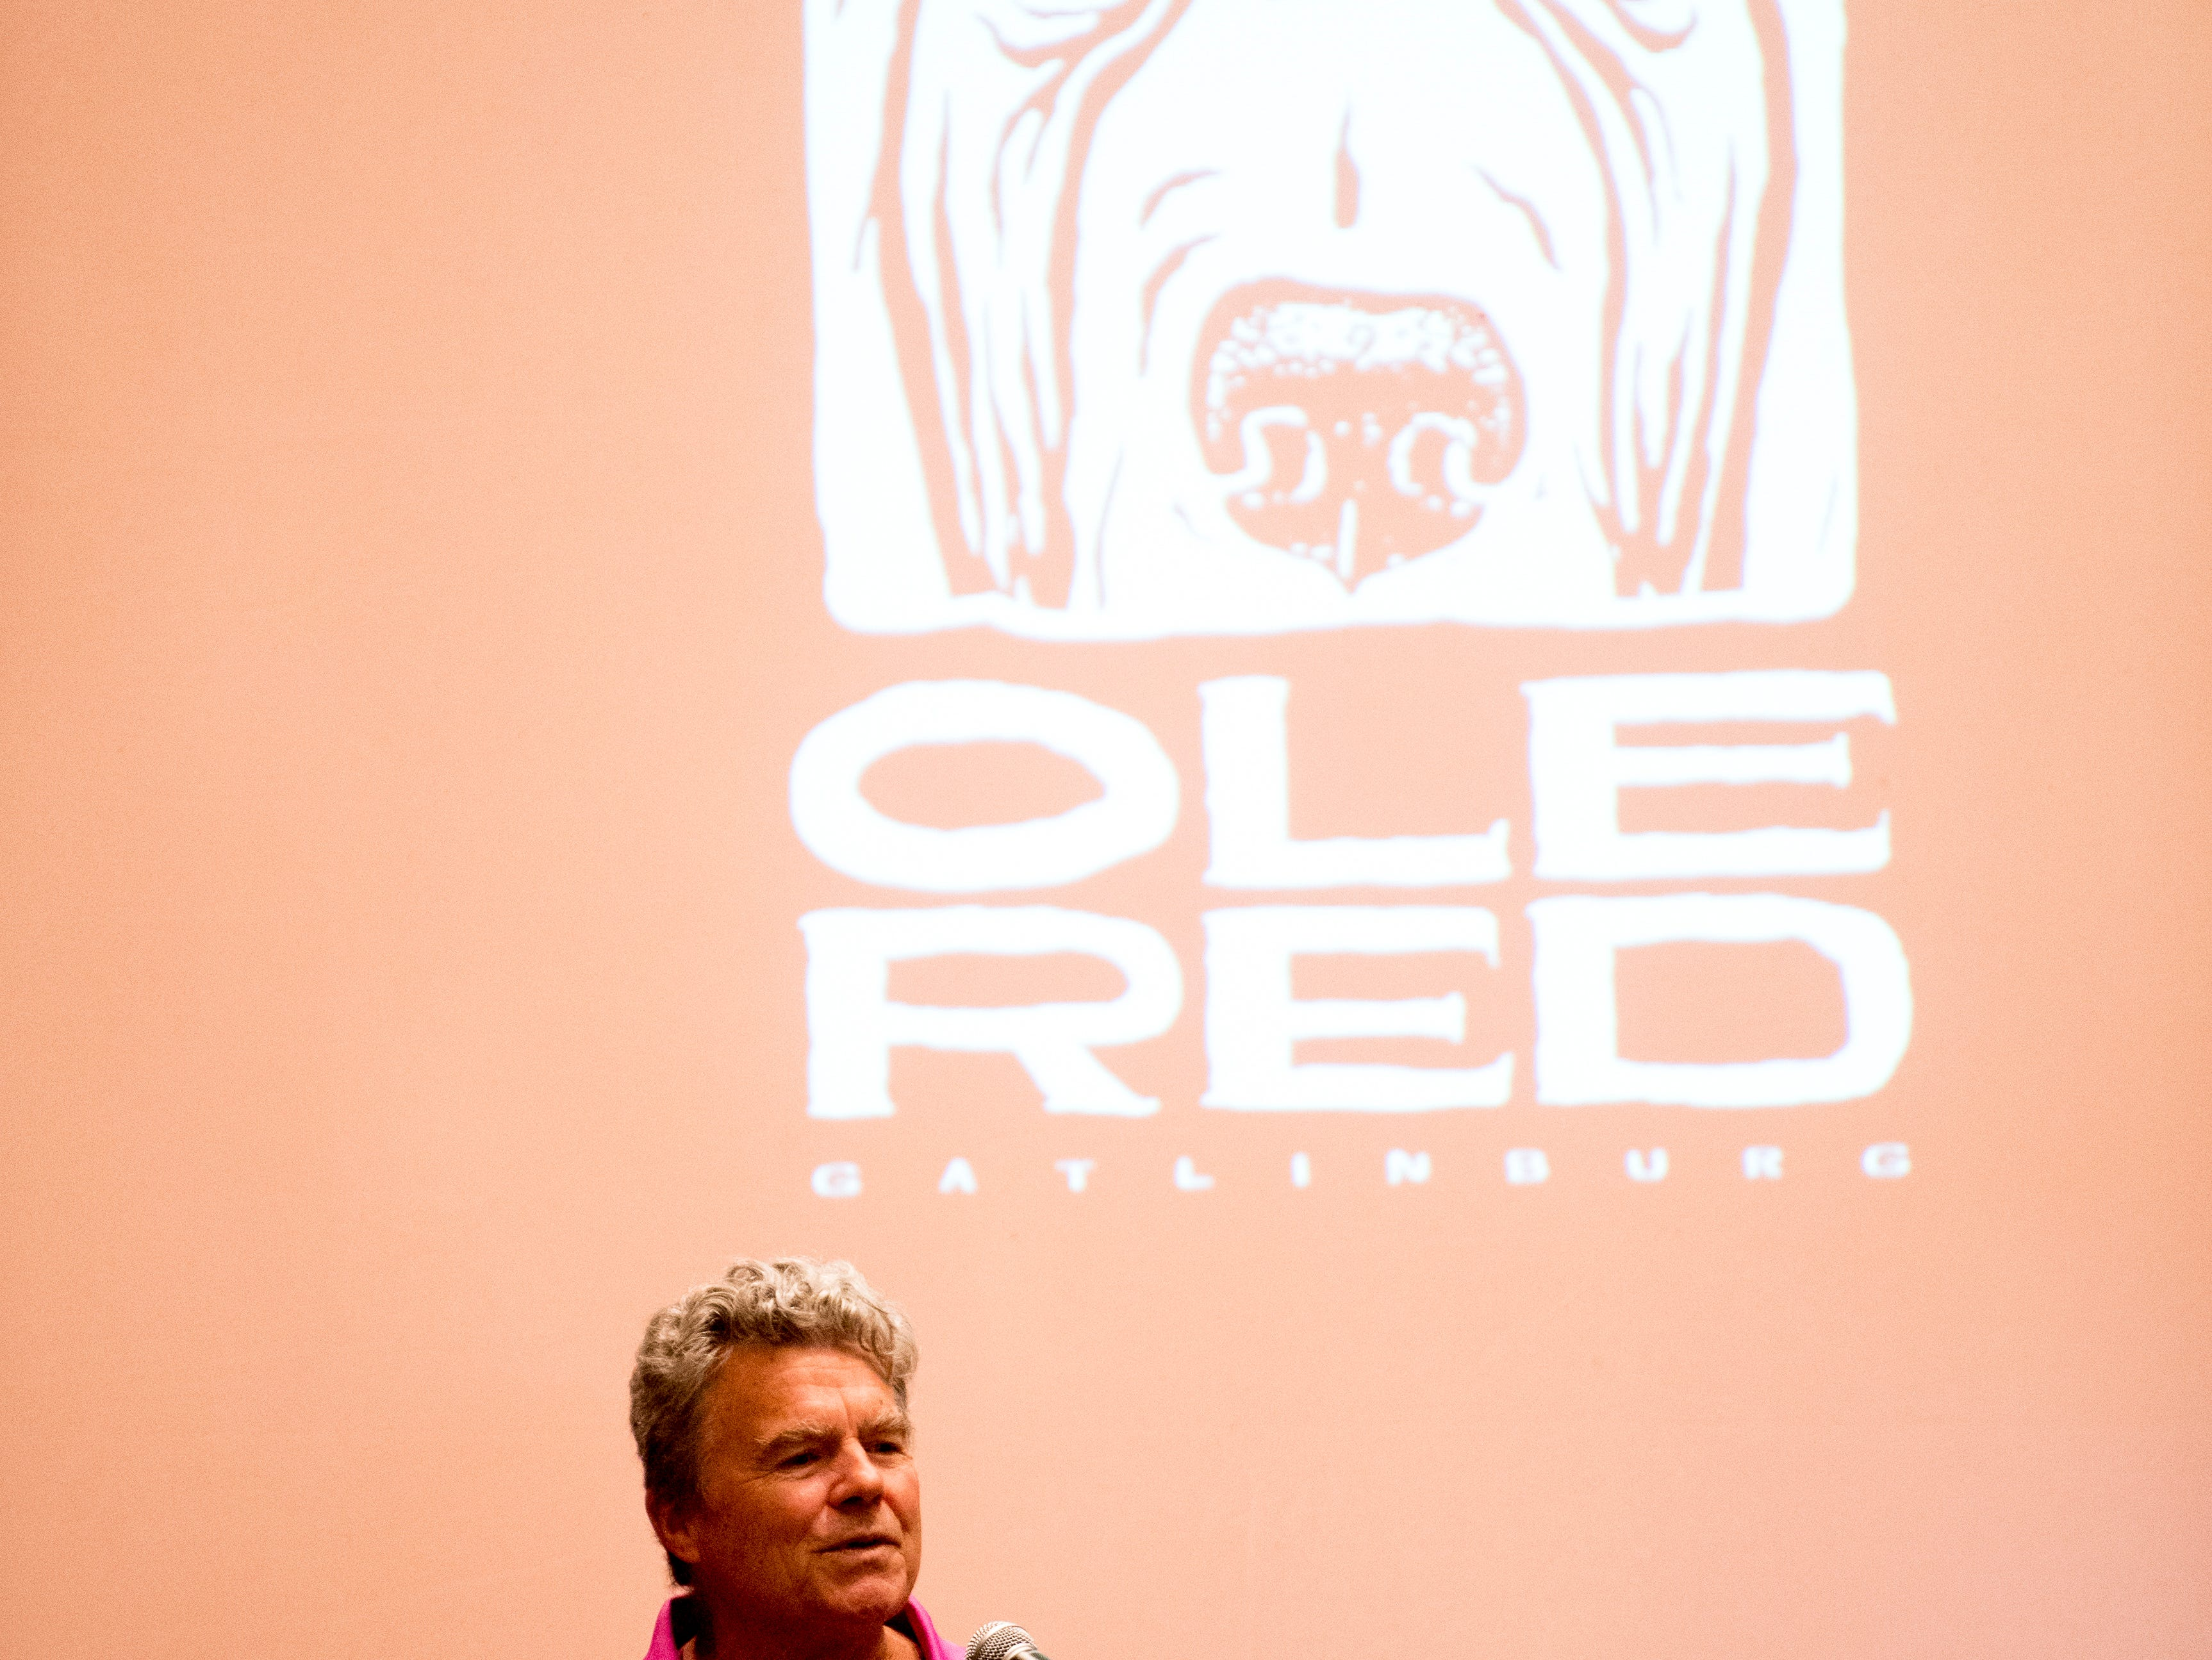 Gatlinburg Mayor Mike Warner speaks during an announcement ceremony for Ole Red Gatlinburg in Gatlinburg, Tennessee on Tuesday, September 18, 2018. The 13,500 square-foot entertainment venue with a two-story bar, restaurant and performance space with space for 325 patrons is slated to open spring 2019.